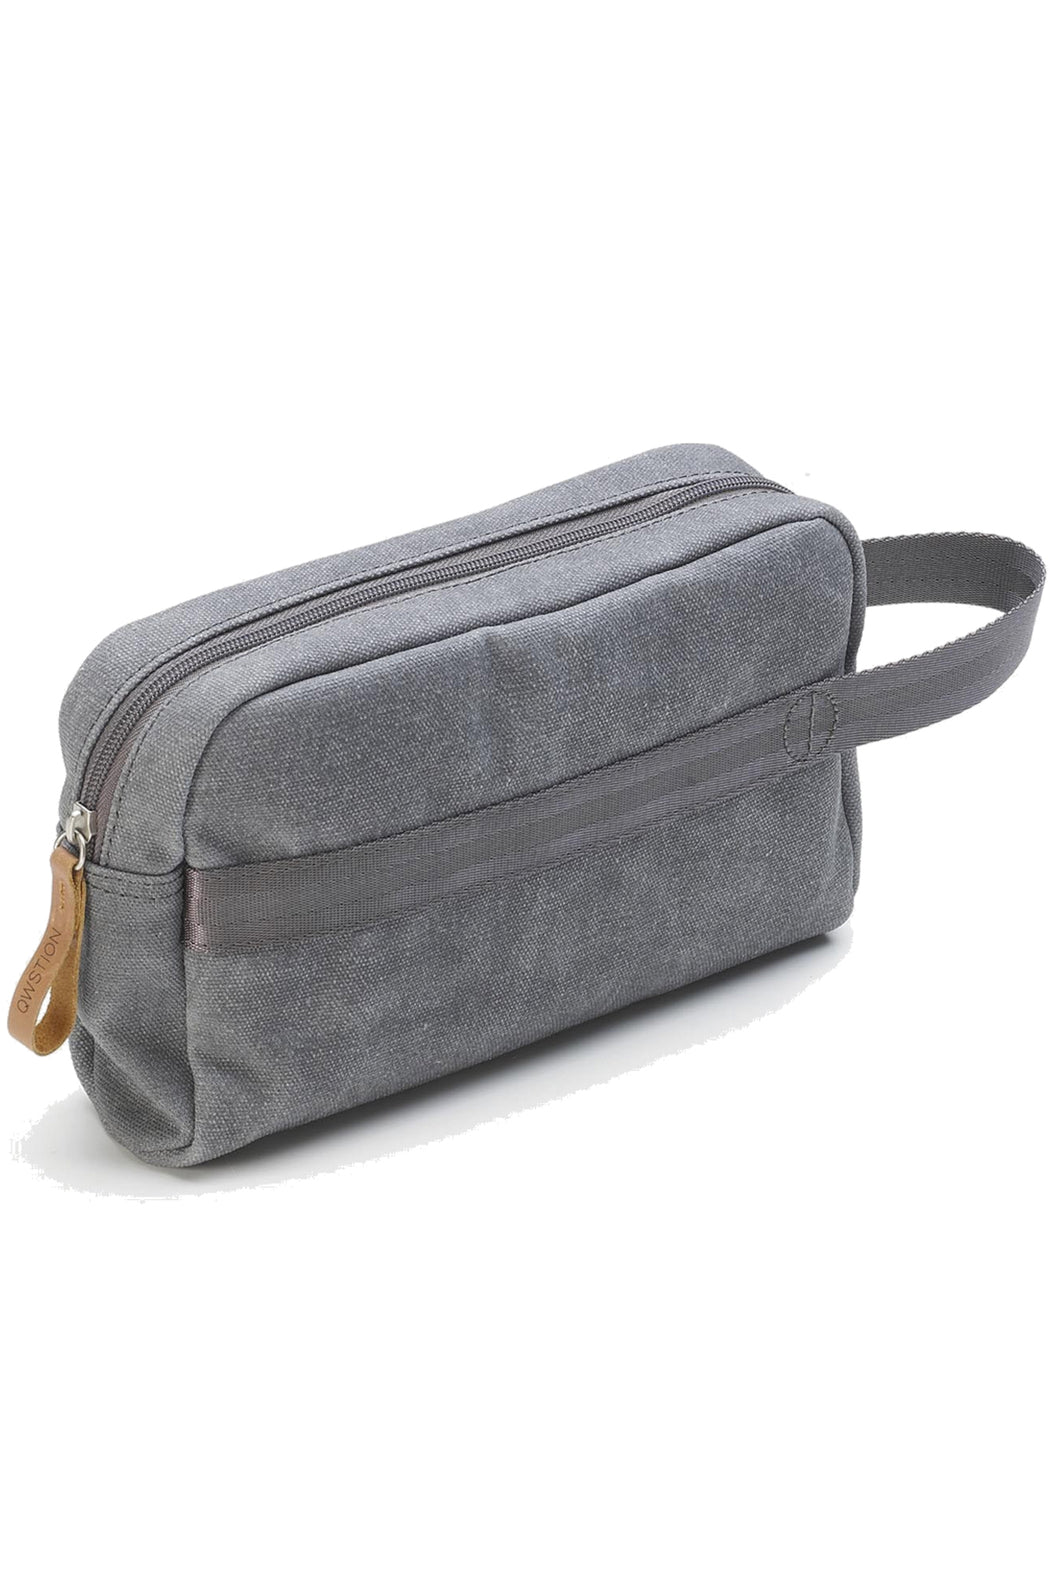 TRAVEL KIT washed grey